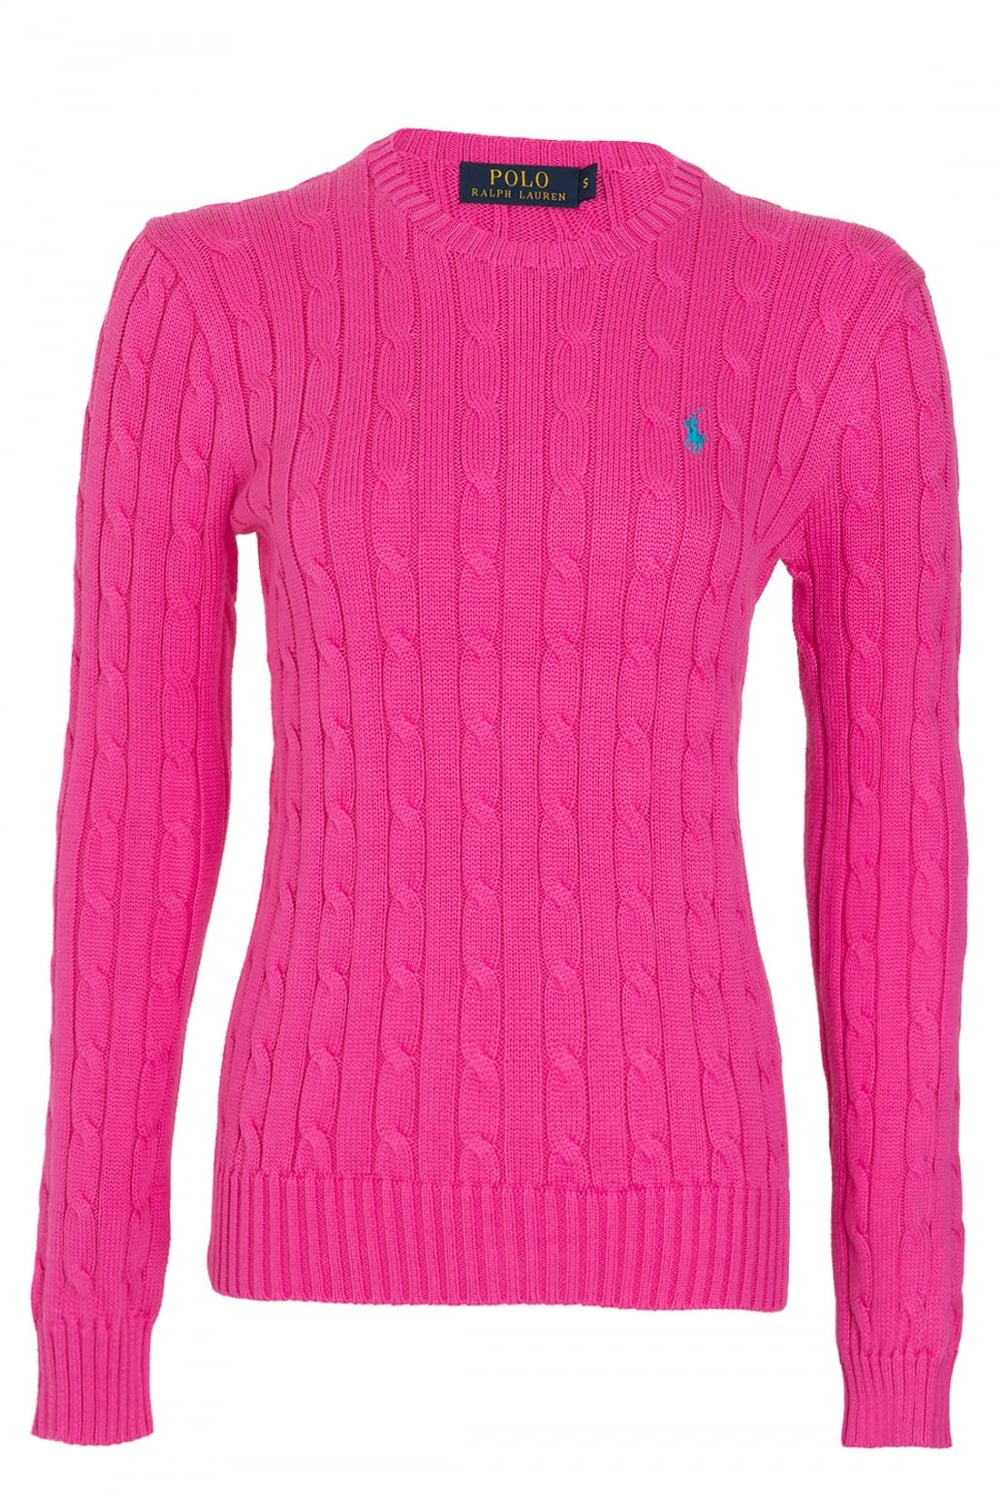 0ba7a45b8 RALPH LAUREN Ralph Lauren Polo Julianna Womens Cable Knit Crew Neck Jumper  Pink - Clothing from Circle Fashion UK